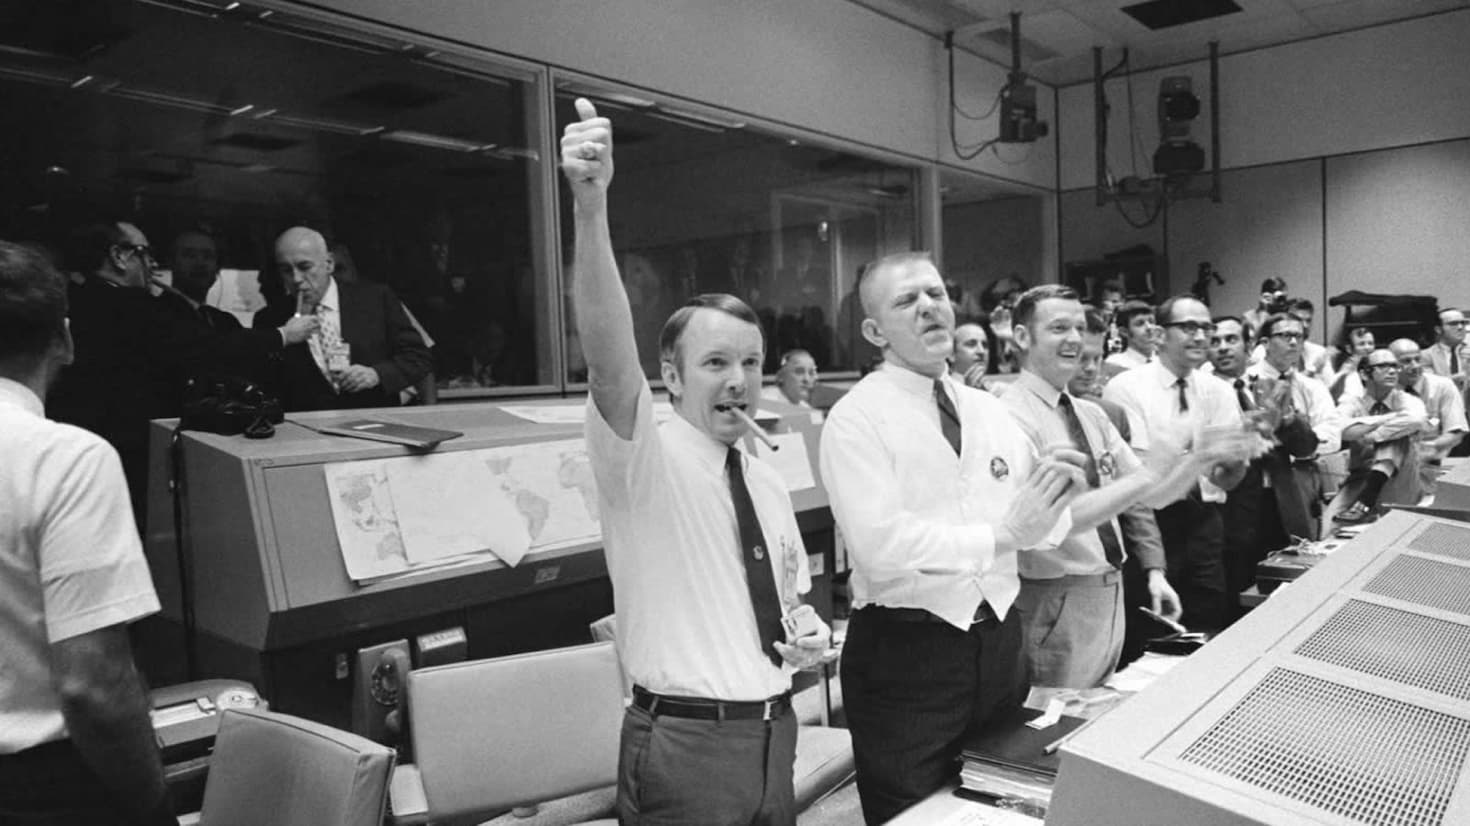 Historic photo of NASA ground control memebers celebrating mission success